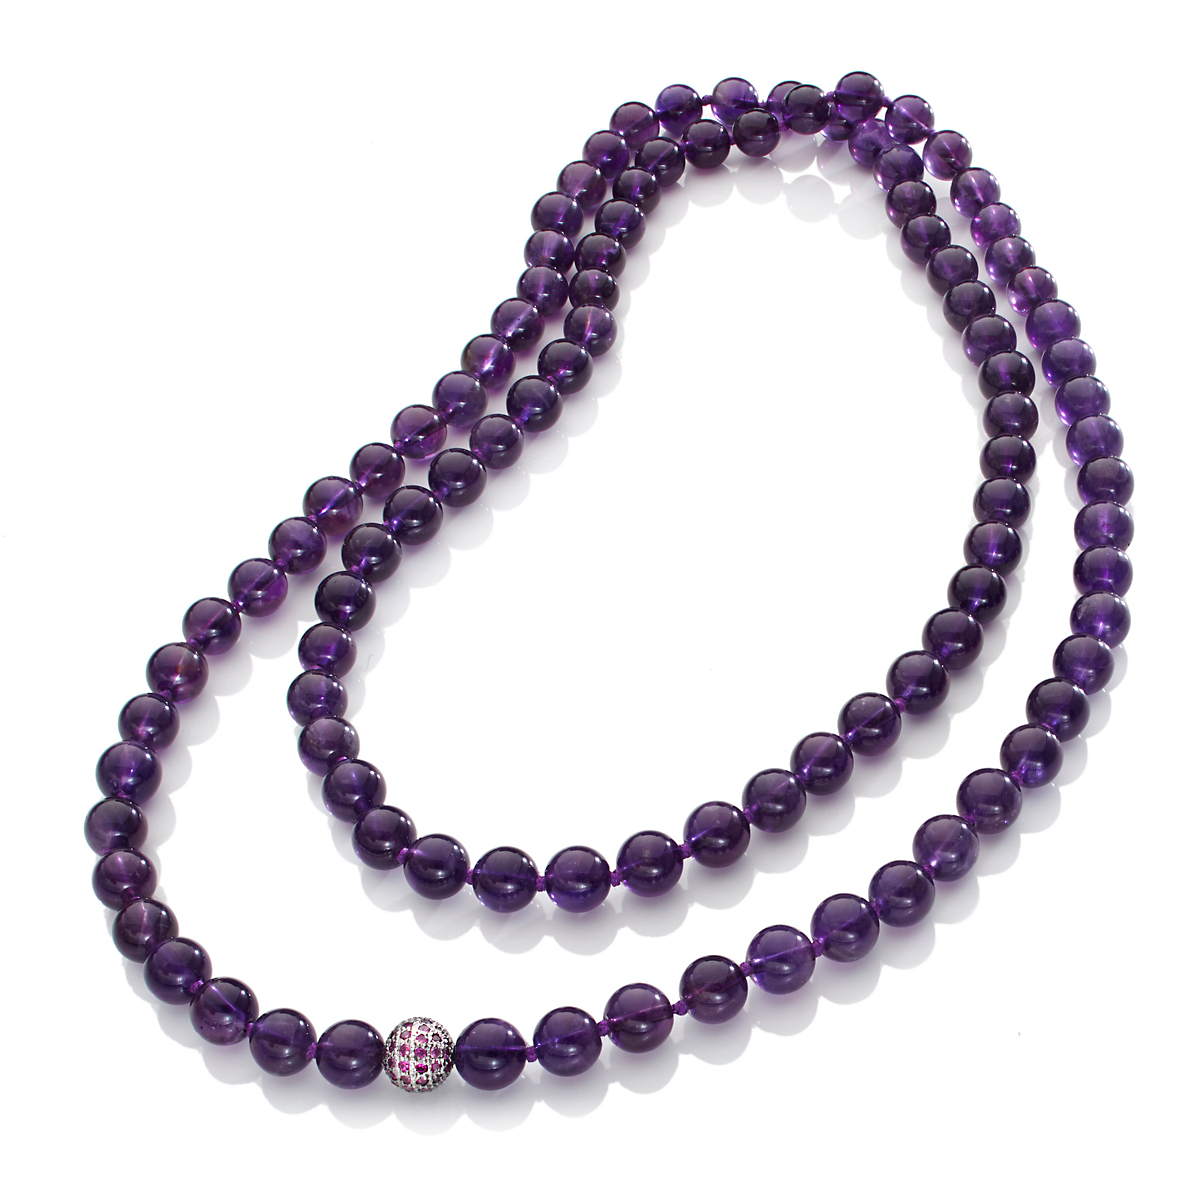 Gump's Dark Amethyst & Pavé Ruby Accent Rope